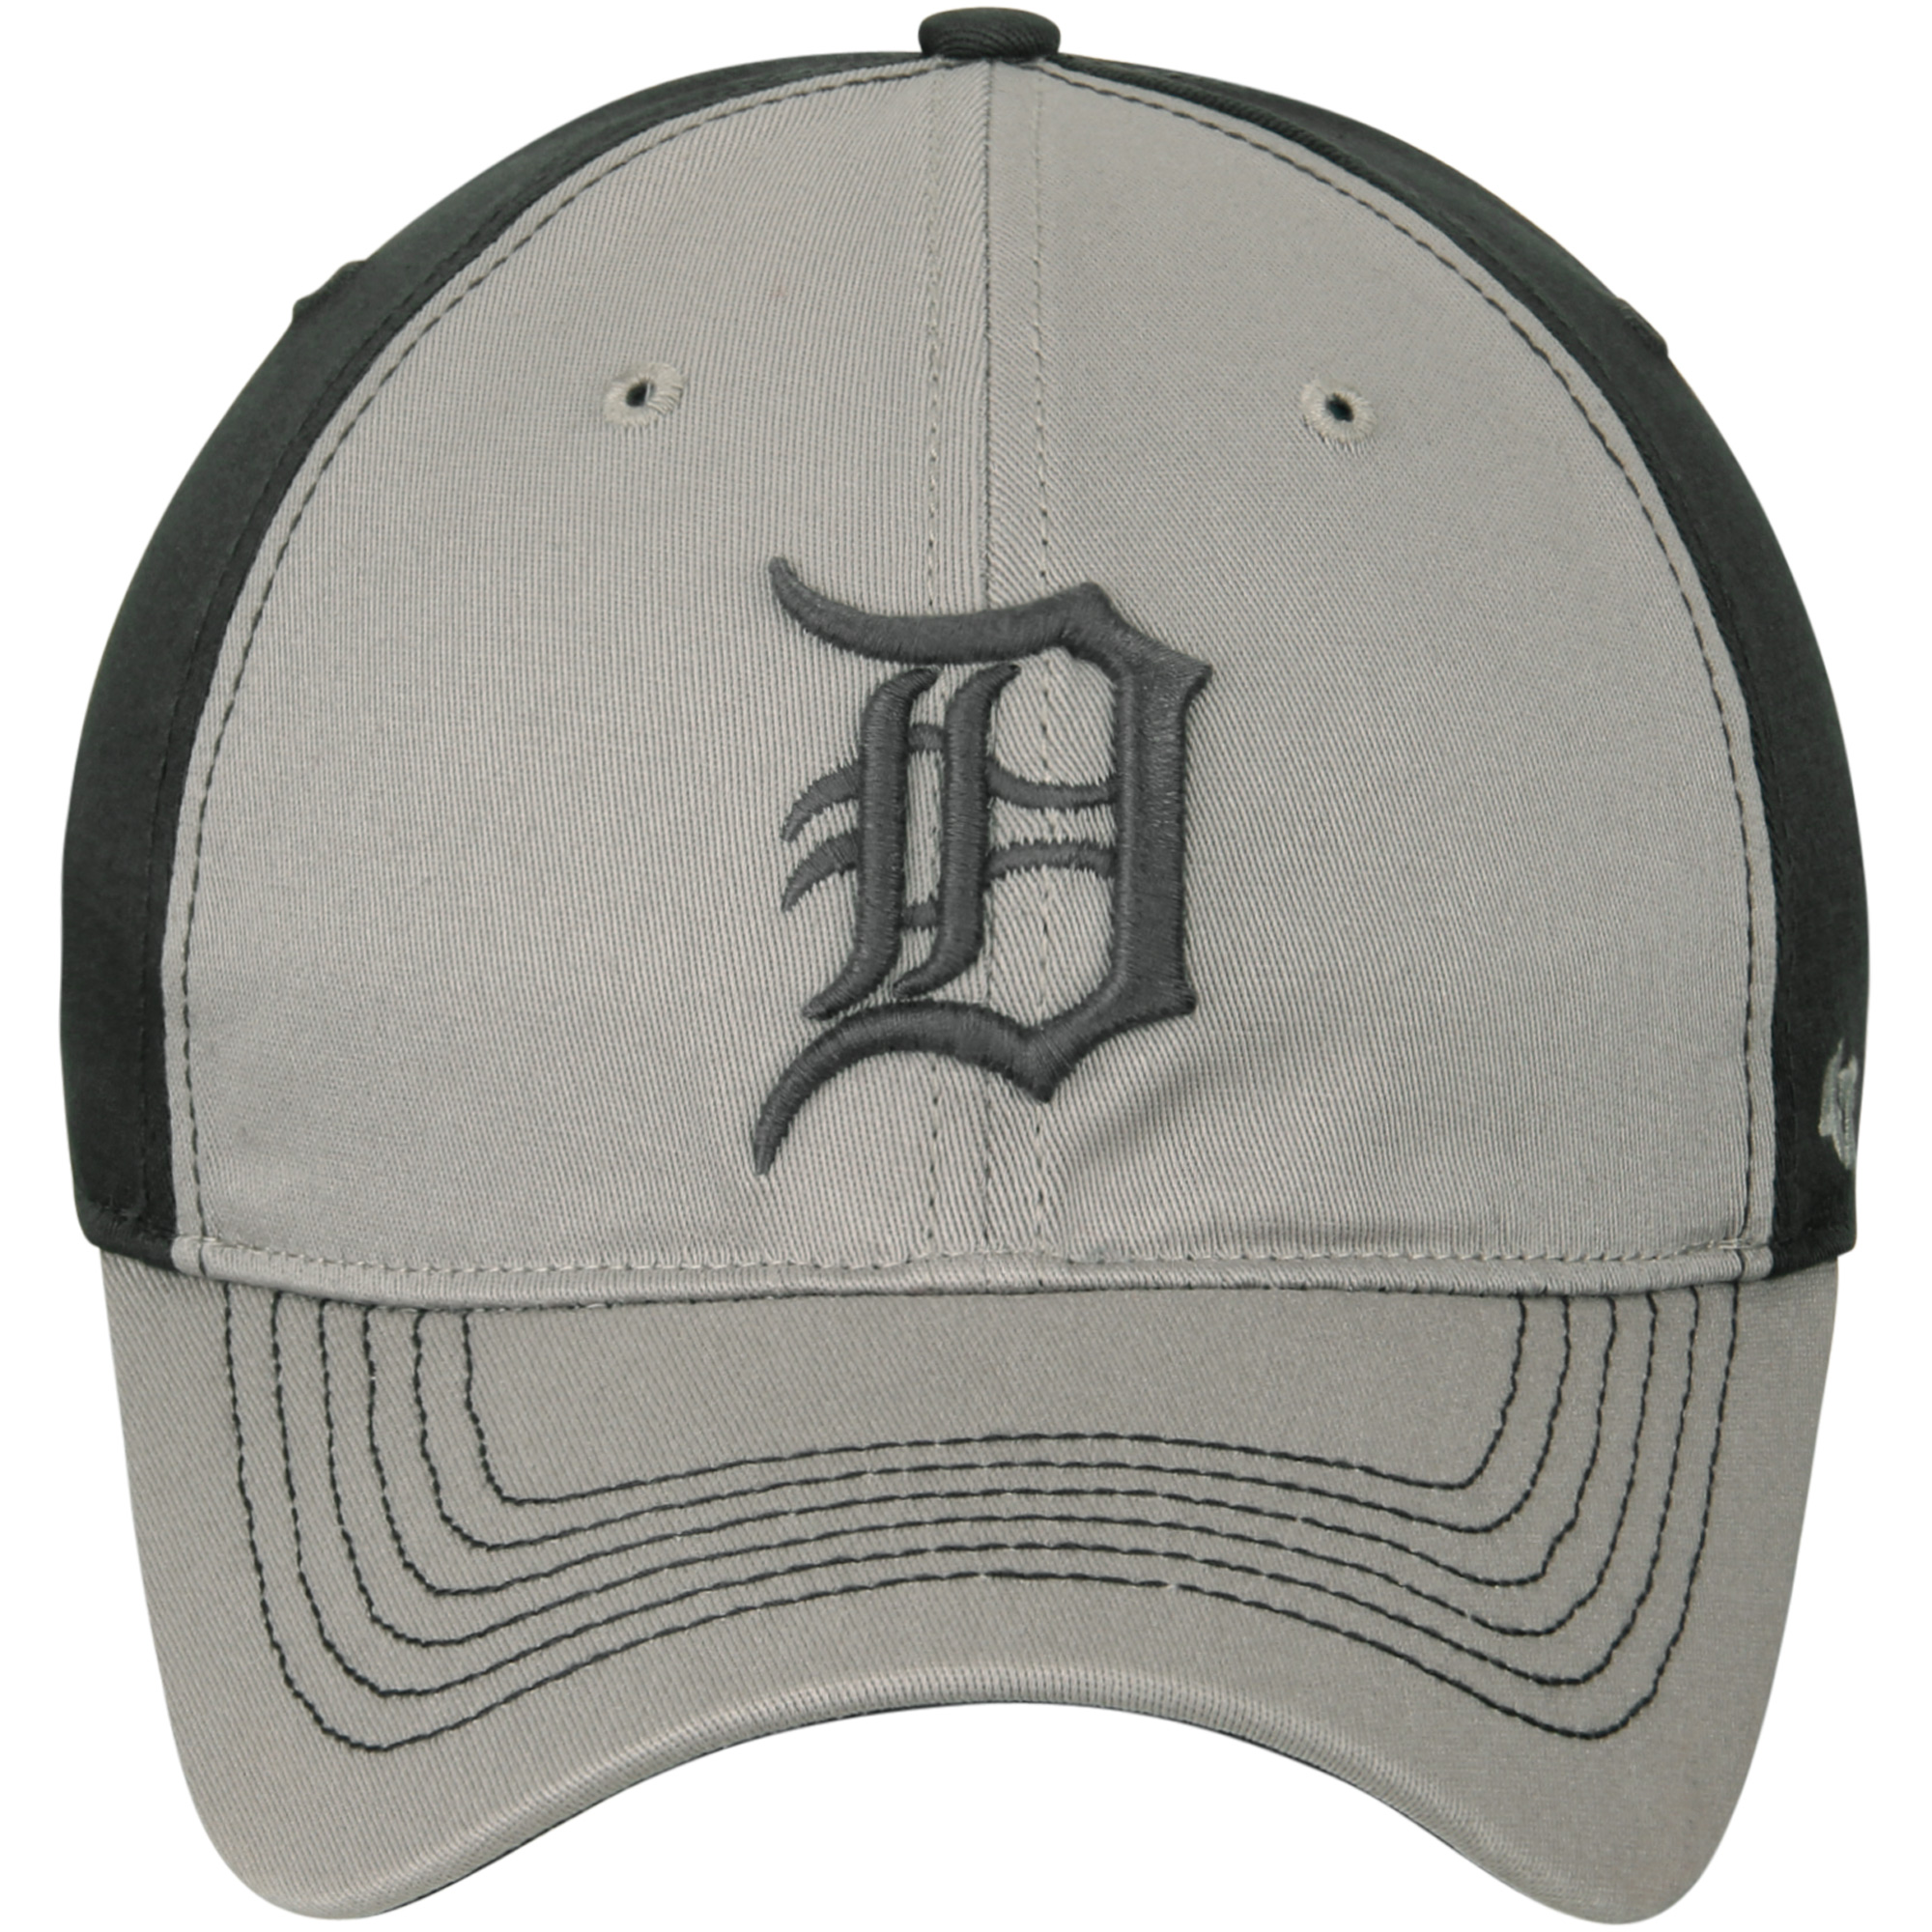 new style 34a26 da261 Detroit Tigers  47 Umbra Closer Flex Hat - Gray Dark Gray - M L -  Walmart.com